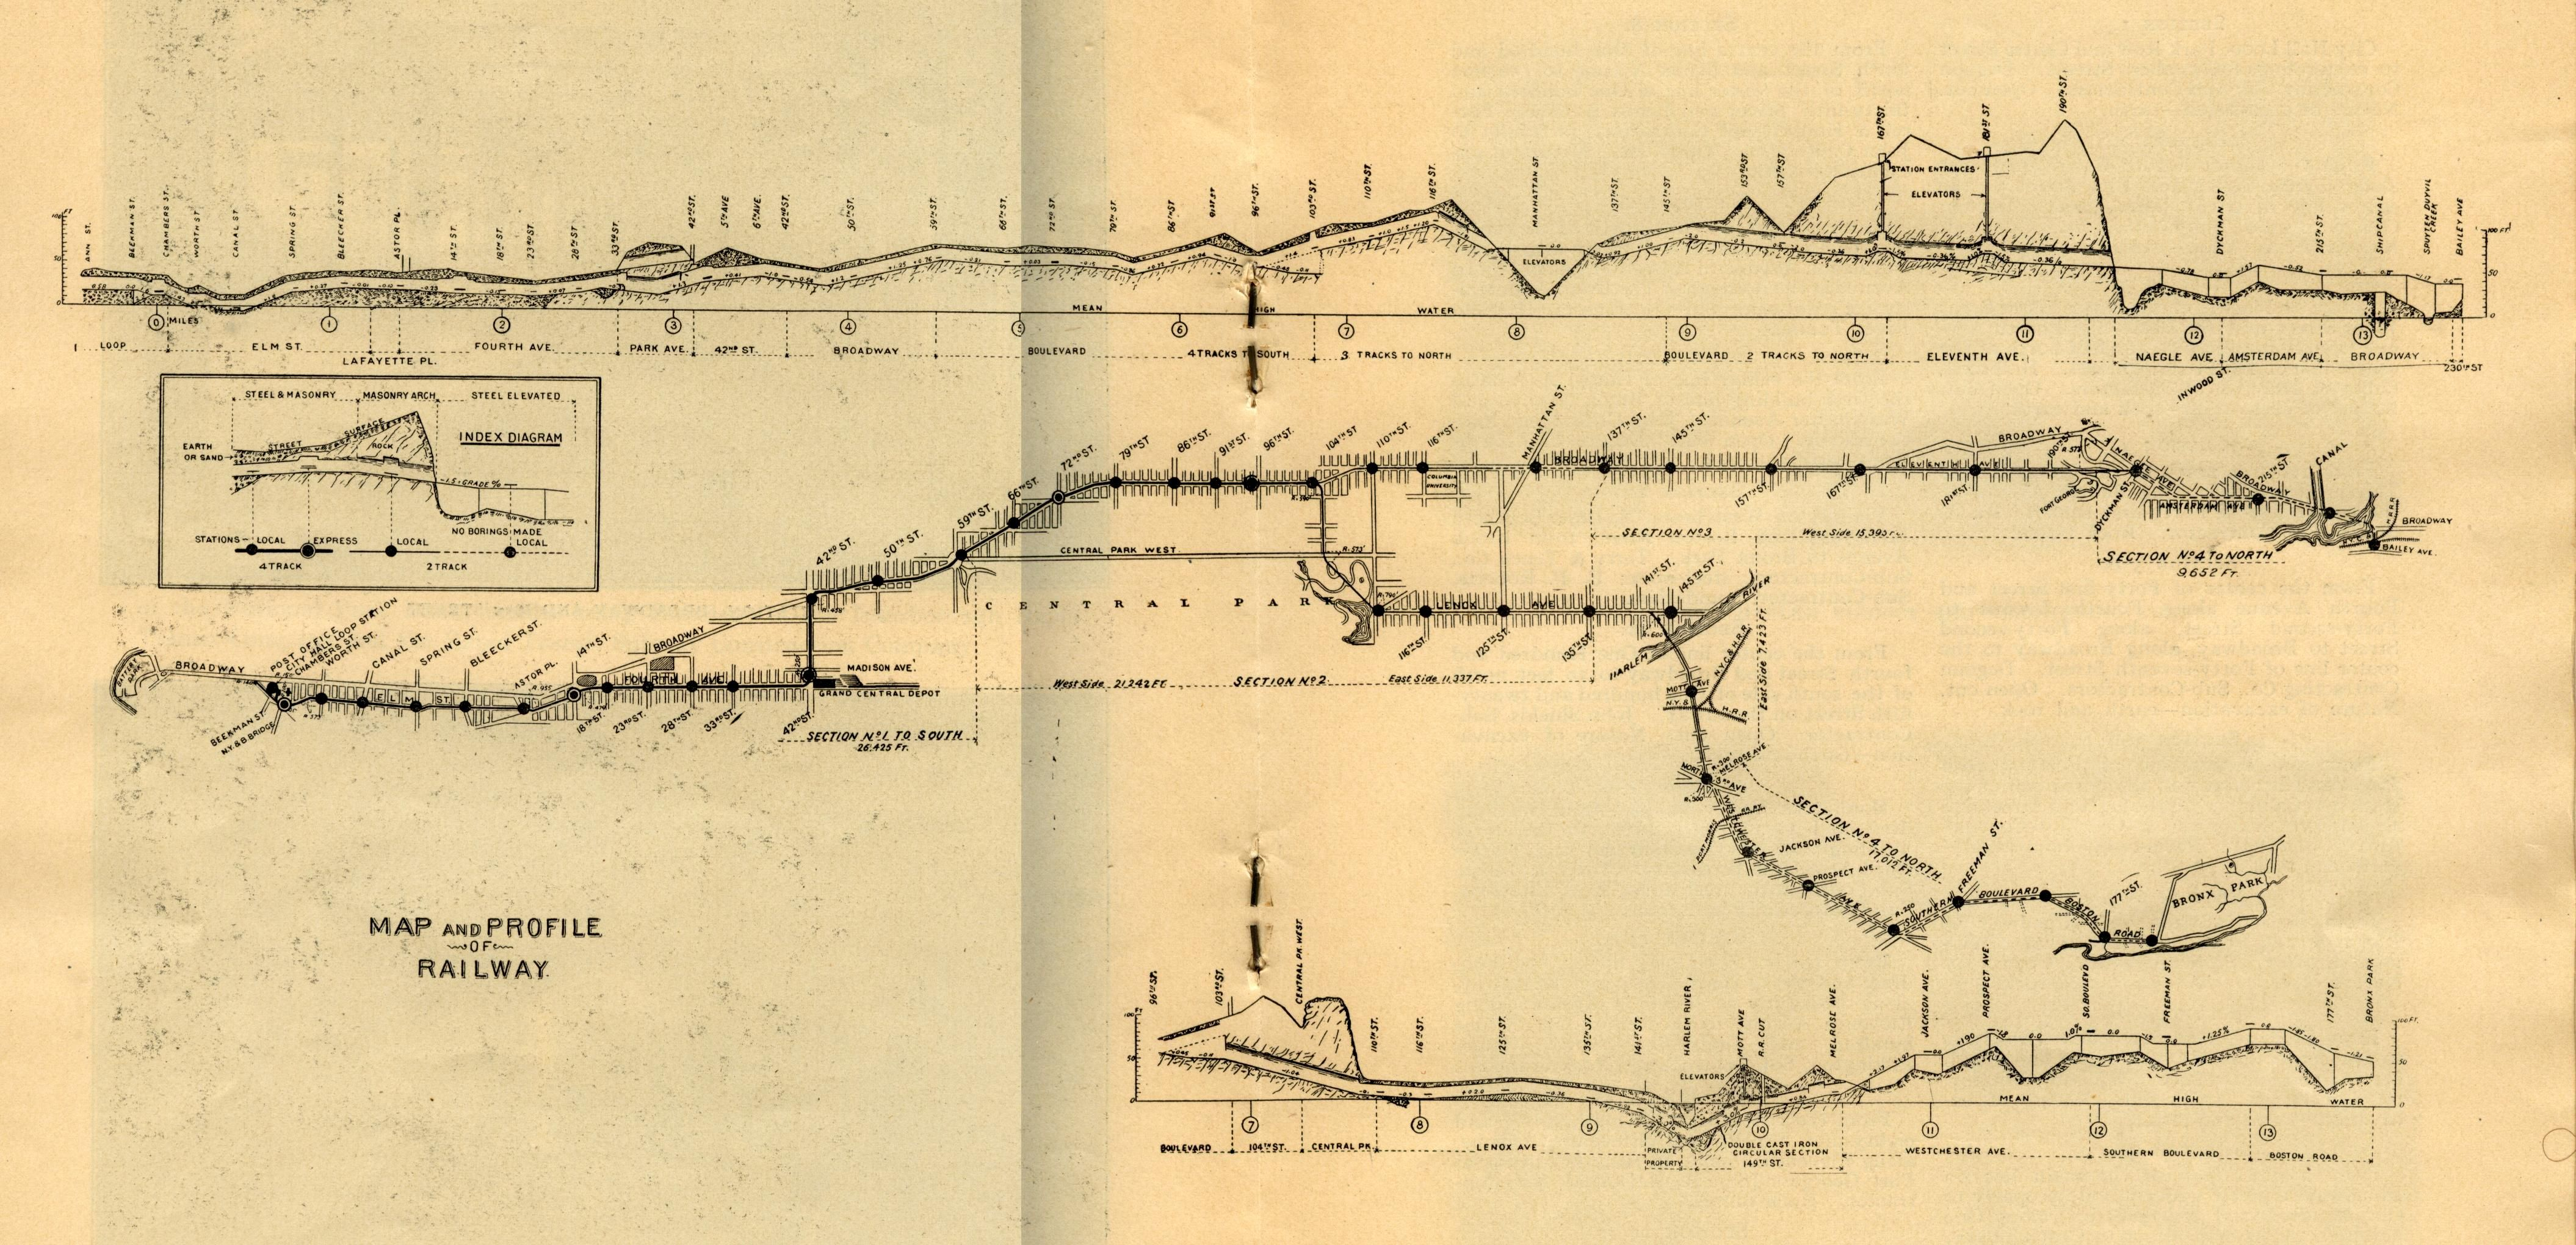 Irt Nyc Subway Map.The 1904 New York Subway Souvenir Publication Included A Map And